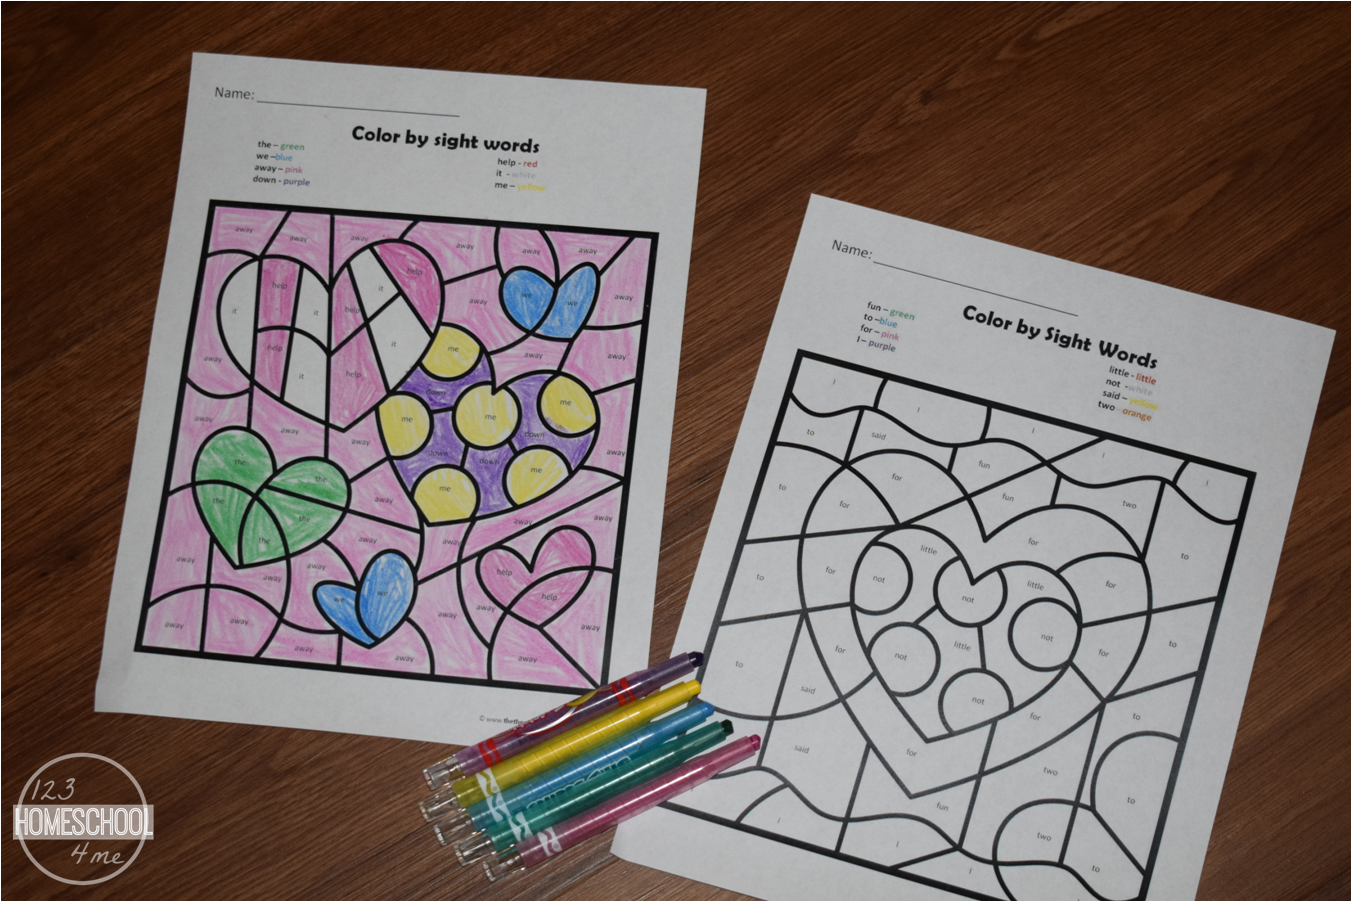 Free Valentine S Day Color By Sight Word Worksheets - Download Color By Sight Word Worksheets For Kindergarten Pictures